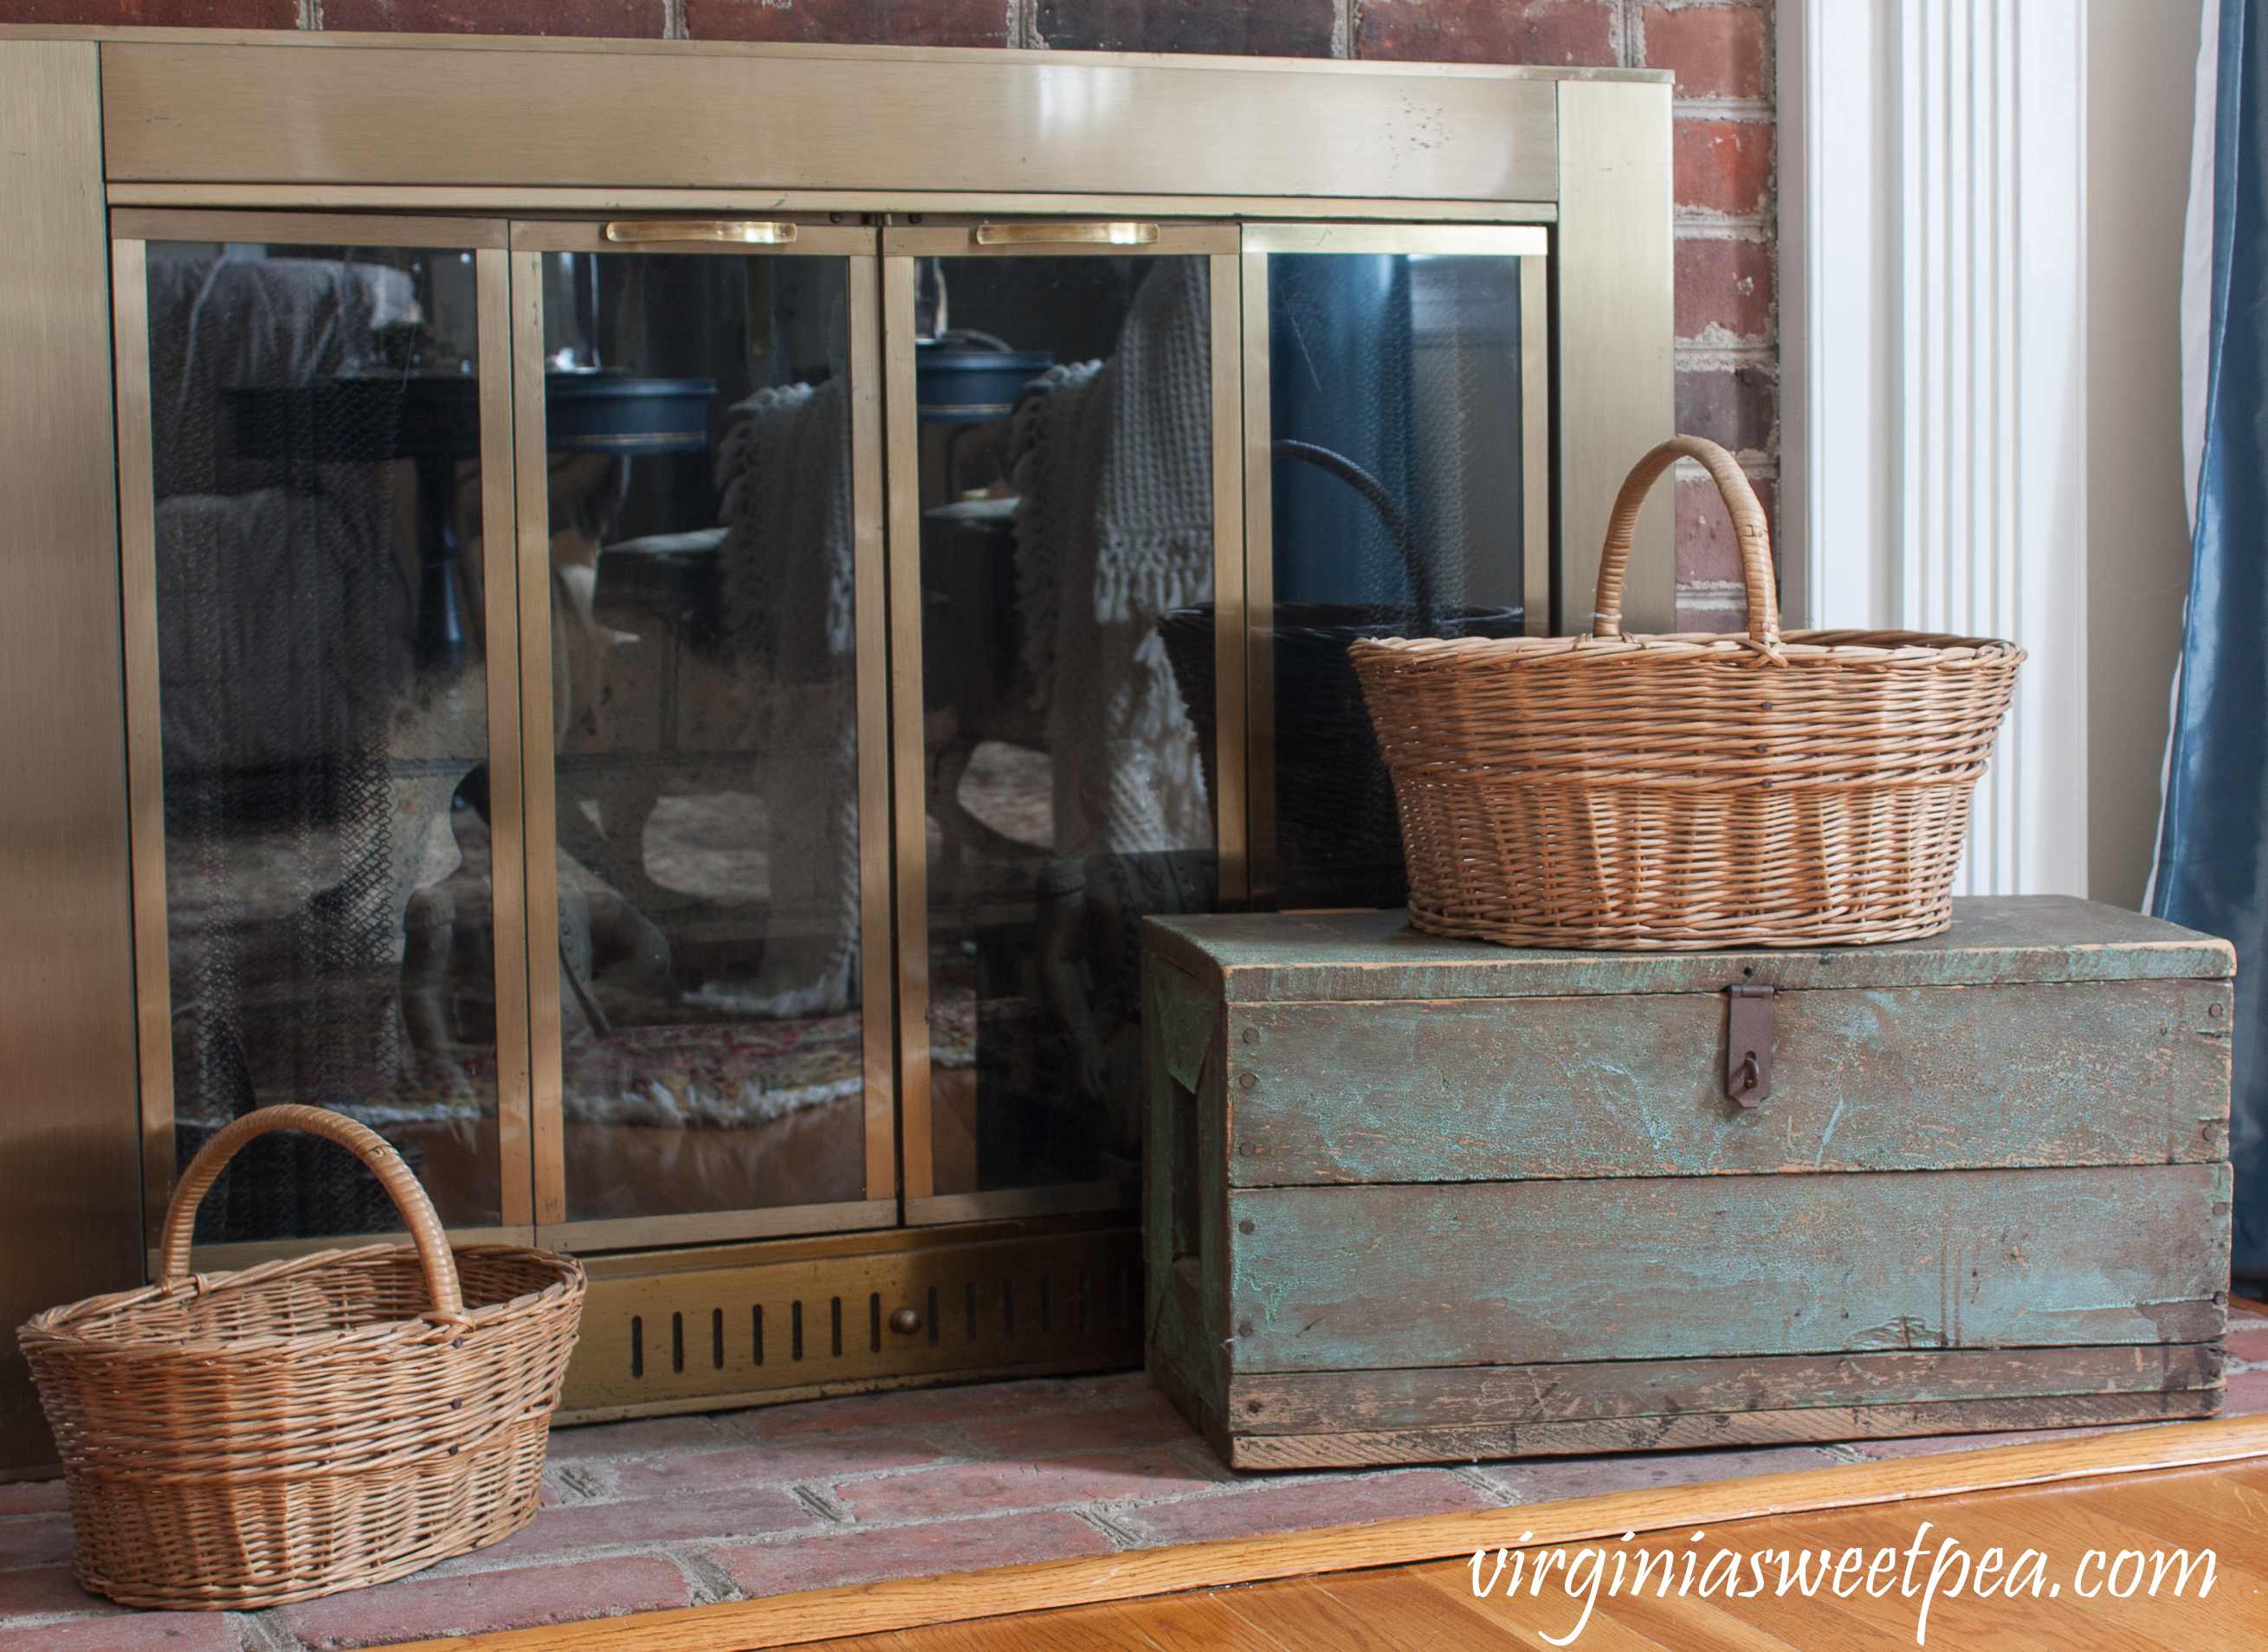 Vintage Baskets made by Charles M. Phleeger of Middletown, MD used on a fireplace hearth with a vintage toolbox